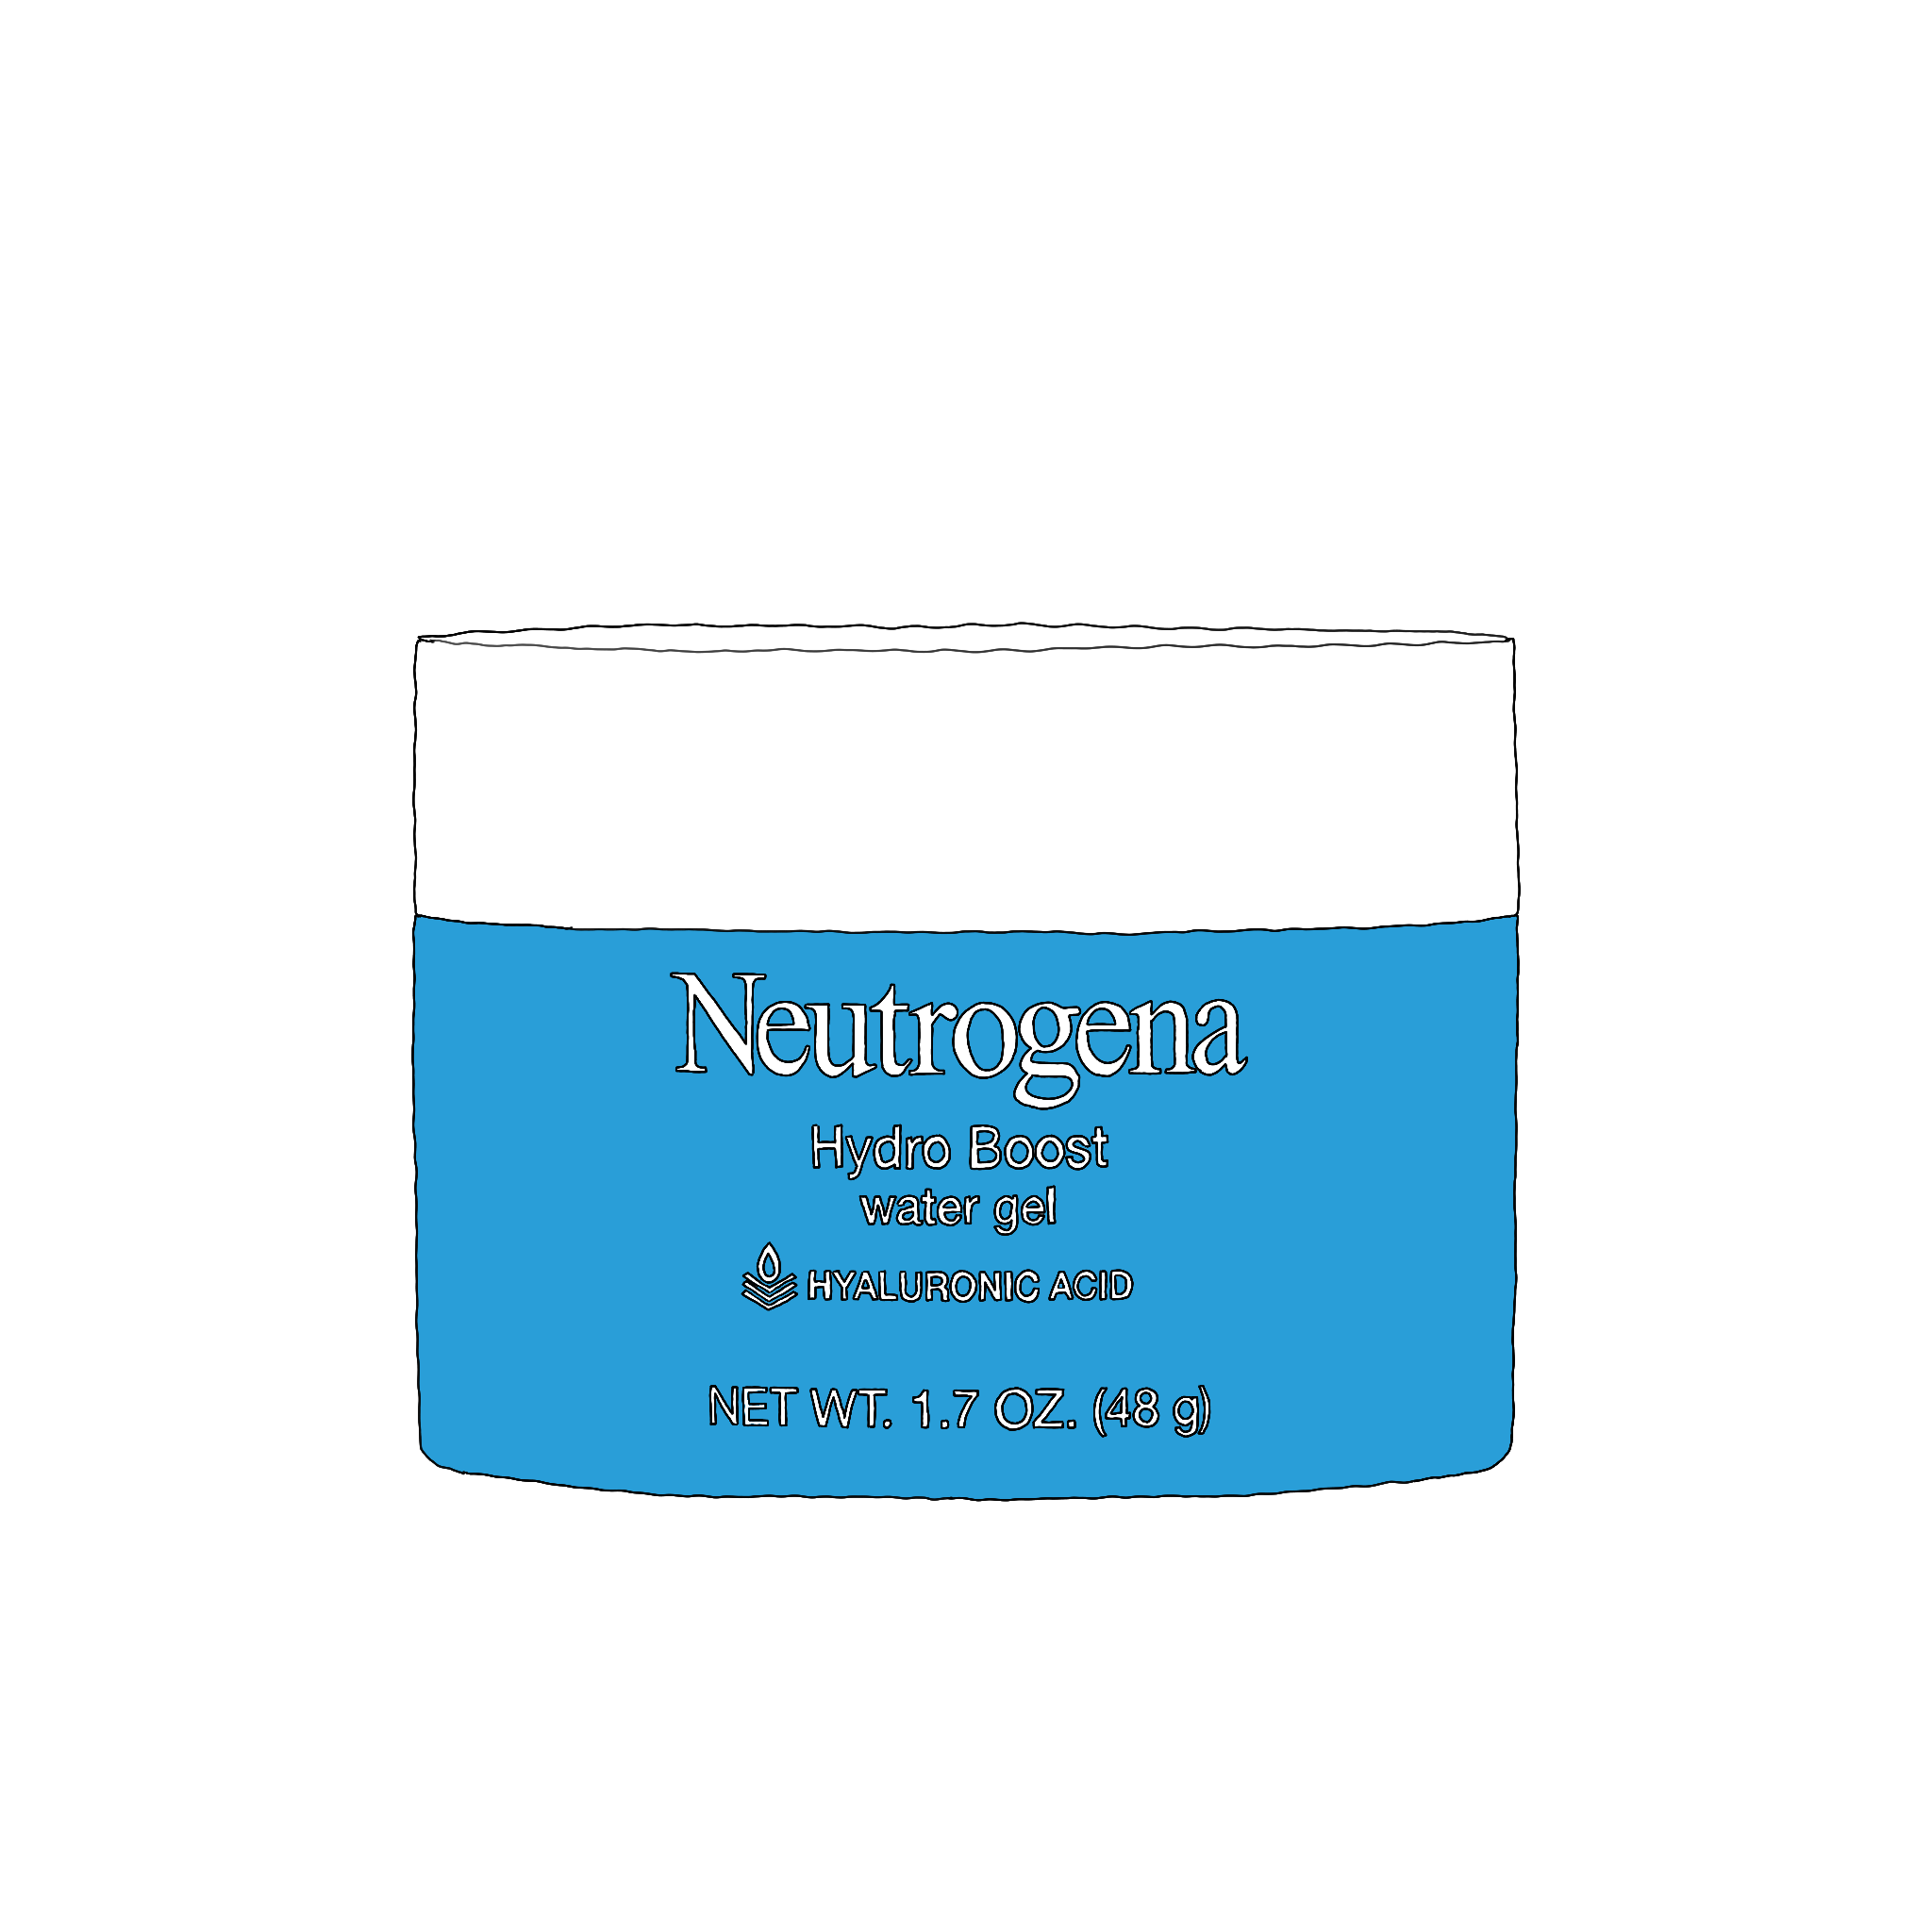 Neutrogena Hydro Boost Water Gel   After working in makeup/skincare since an accidental job in college. And as someone prone to breakouts and deep loyalty to her favorite products, Alex-Anna exclusively uses  Amy Head Cosmetics  for makeup and  Kiehl's  skincare. That was, until she found  this moisturizer . It cleared her breakouts, and made her skin softer than EVER! (It also comes with  sunscreen !)